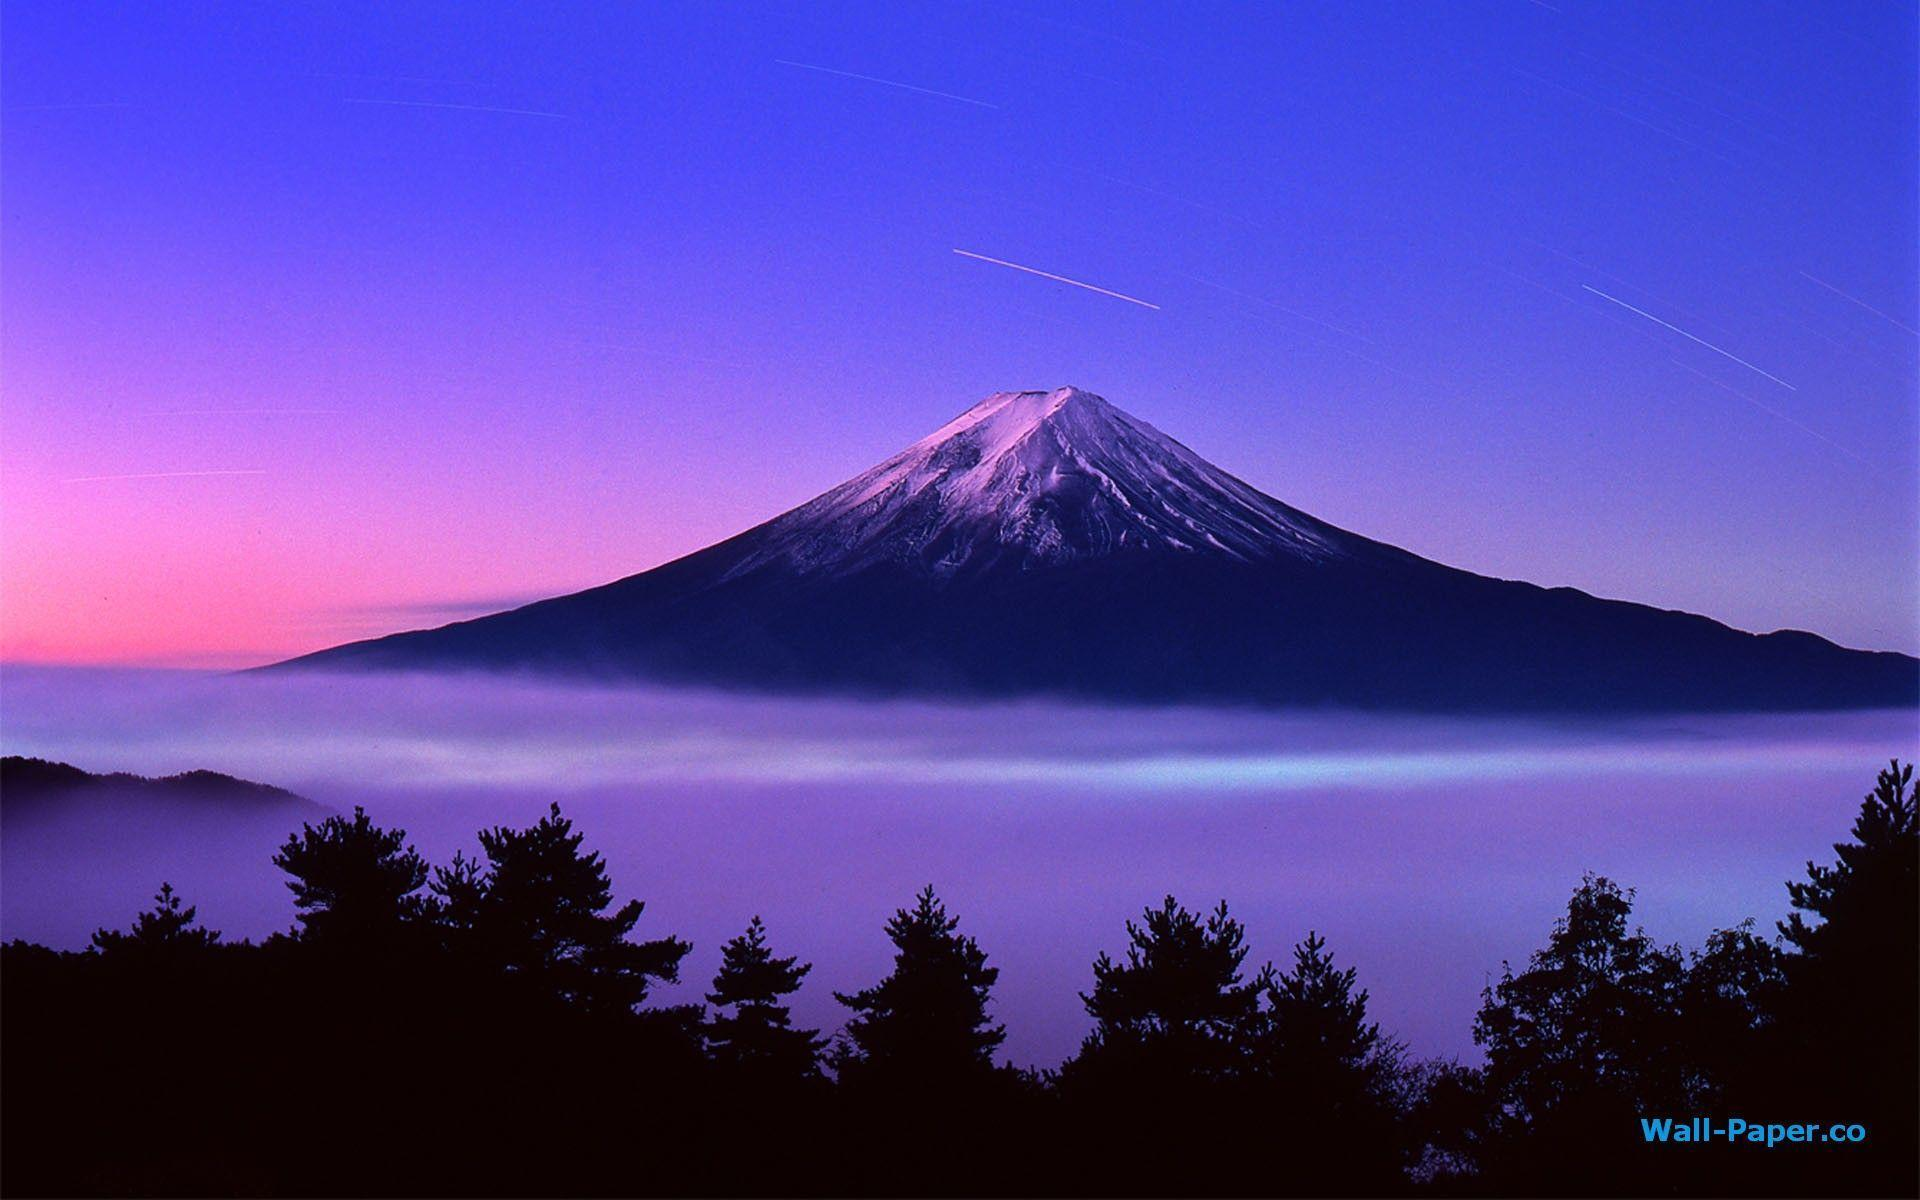 Fuji Mountain Wallpapers   Top Fuji Mountain Backgrounds 1920x1200